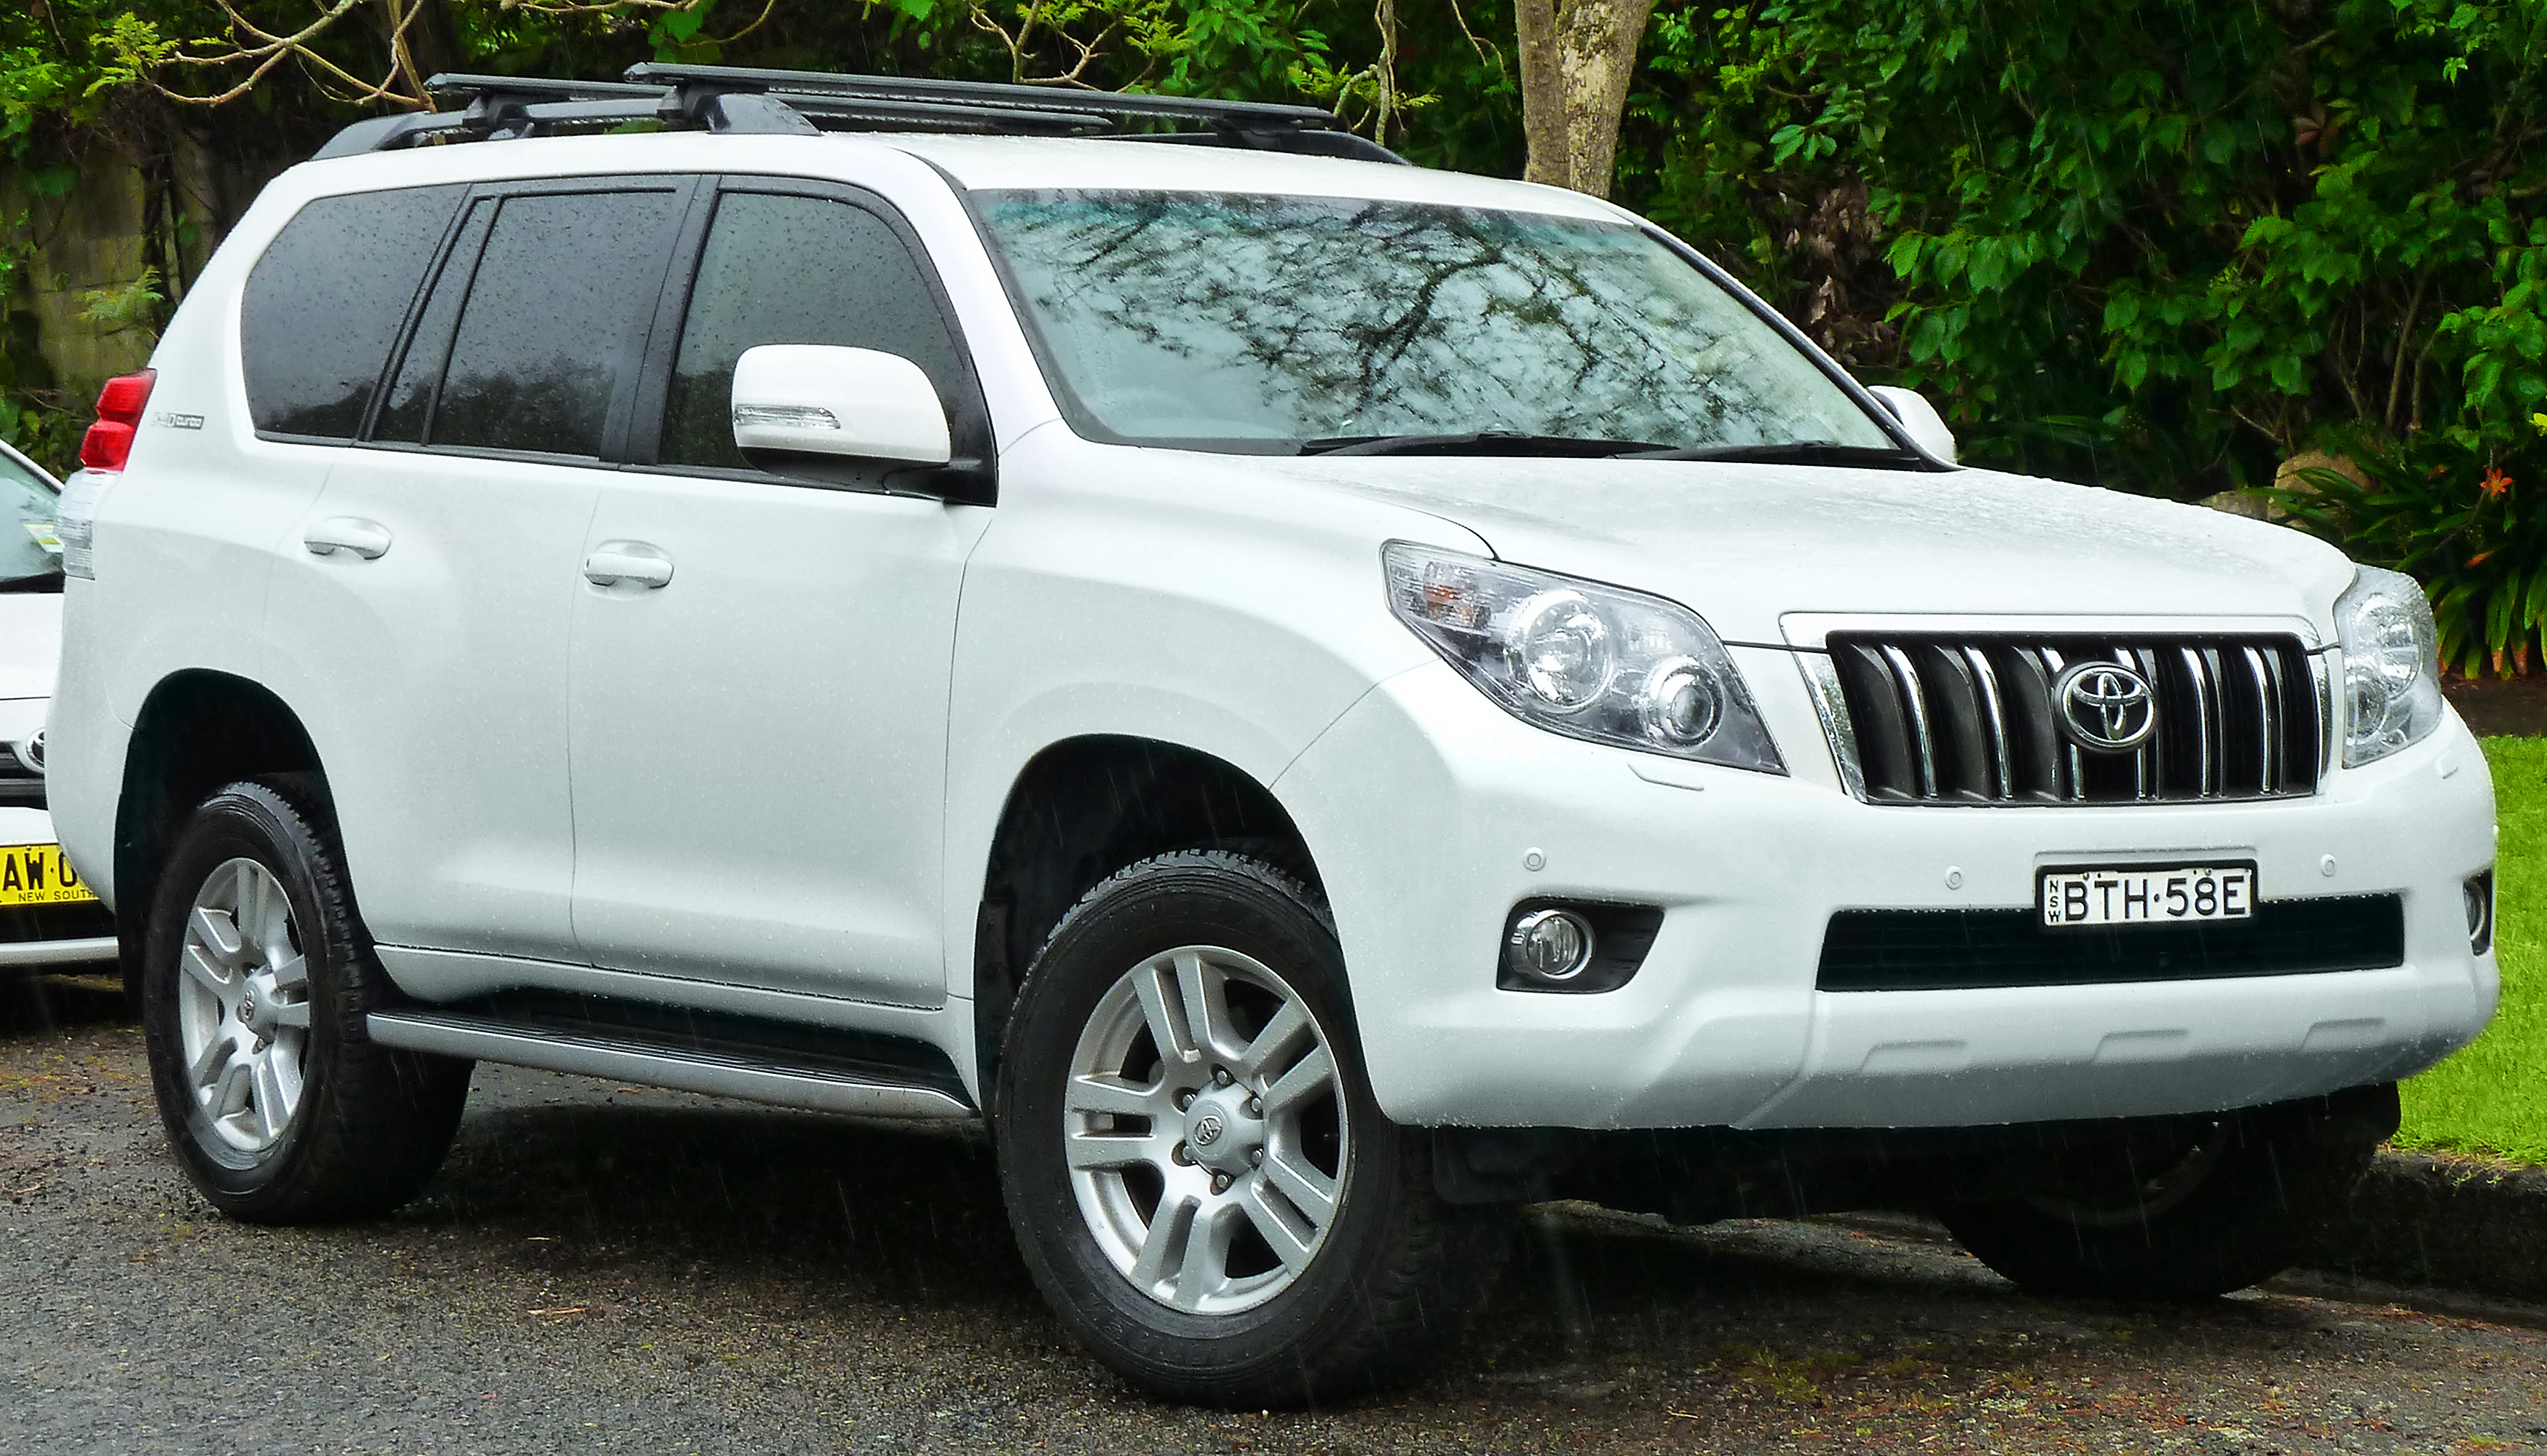 2013 toyota land cruiser prado j150 pictures information and specs auto. Black Bedroom Furniture Sets. Home Design Ideas